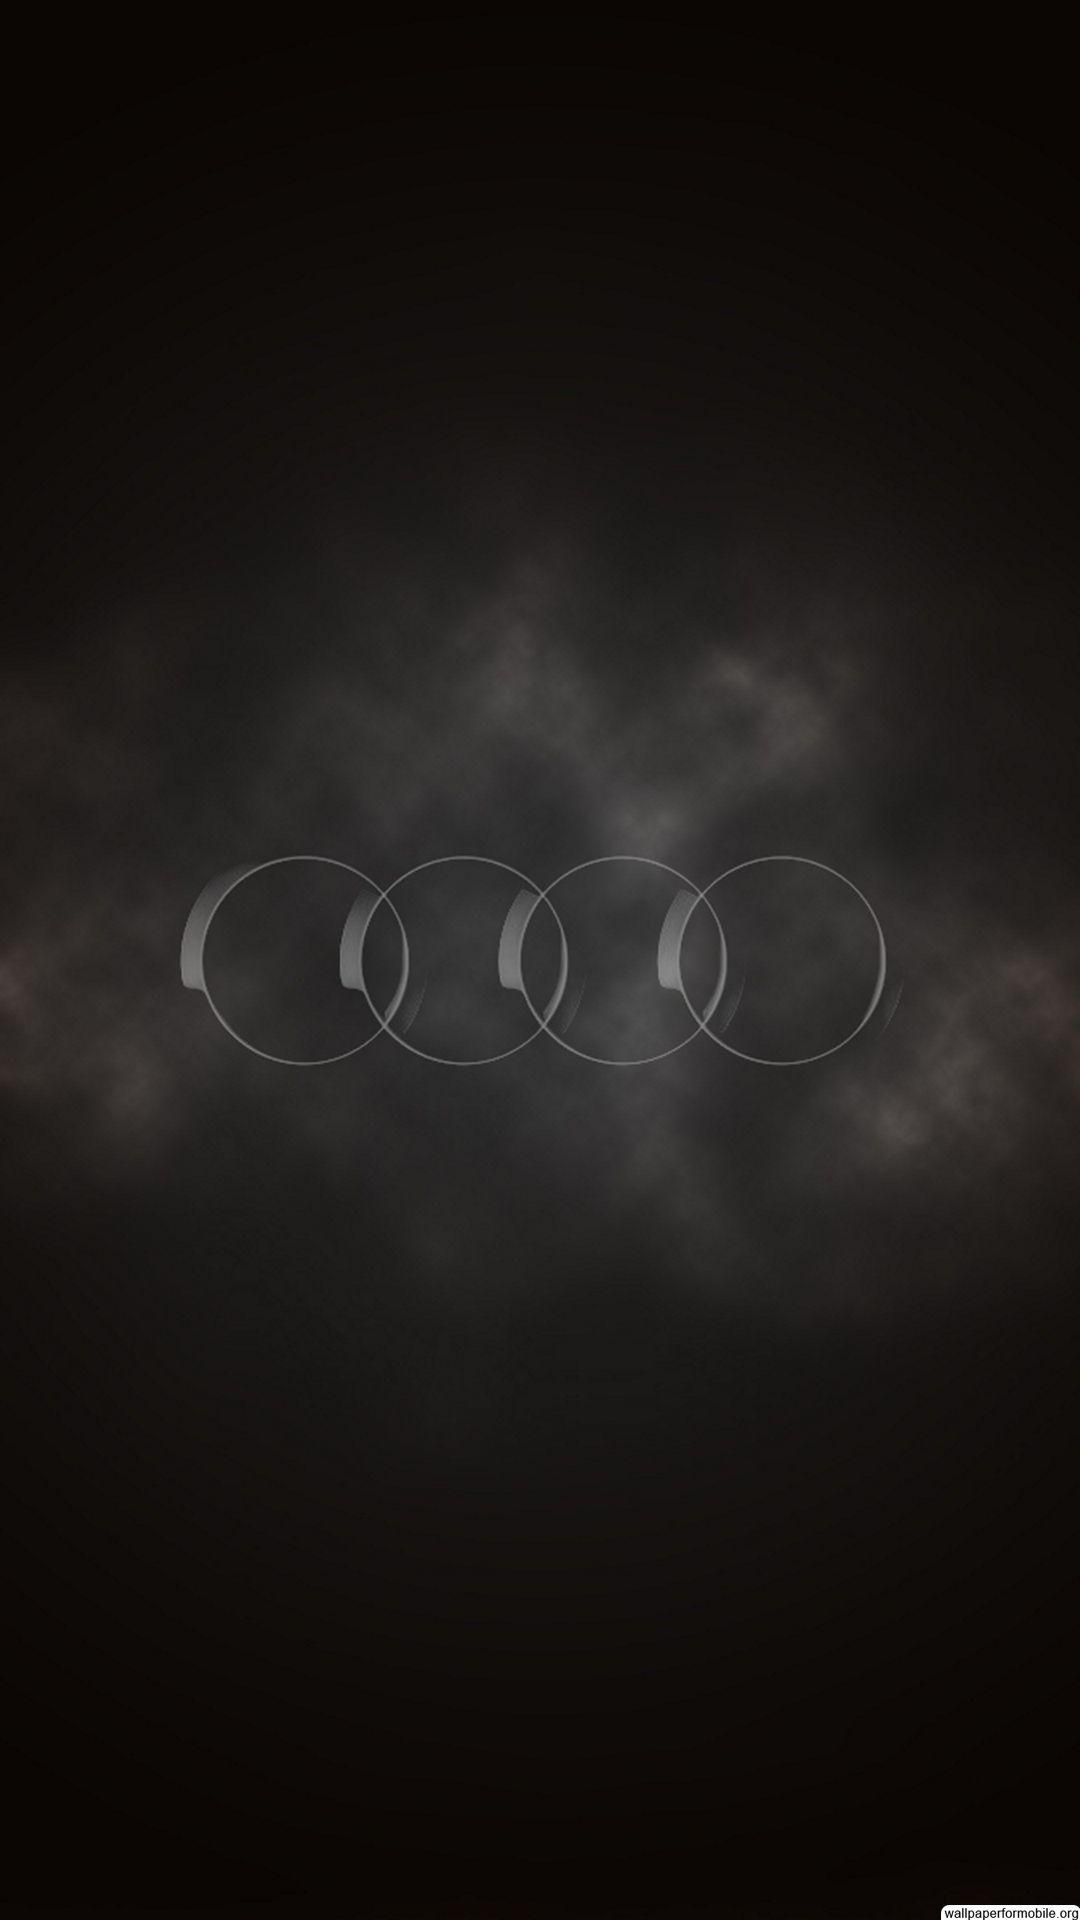 Audi Logo Wallpapers Wallpaper Cave Logo Wallpaper Hd Audi Logo Iphone Wallpaper